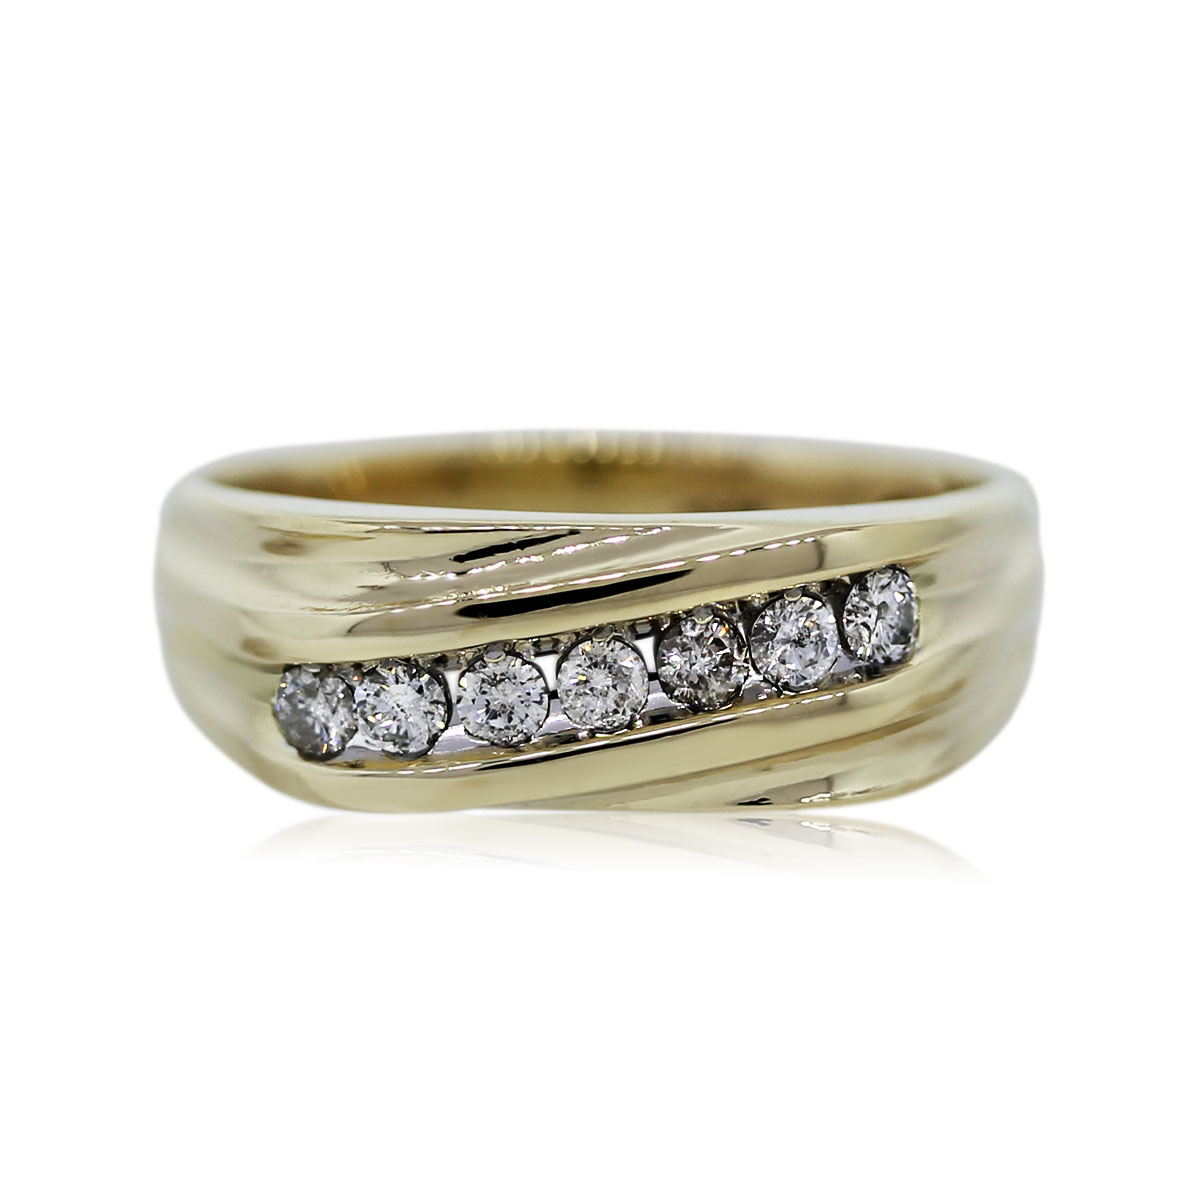 You are Viewing this 0.42ctw Round Diamond Mens Ring!